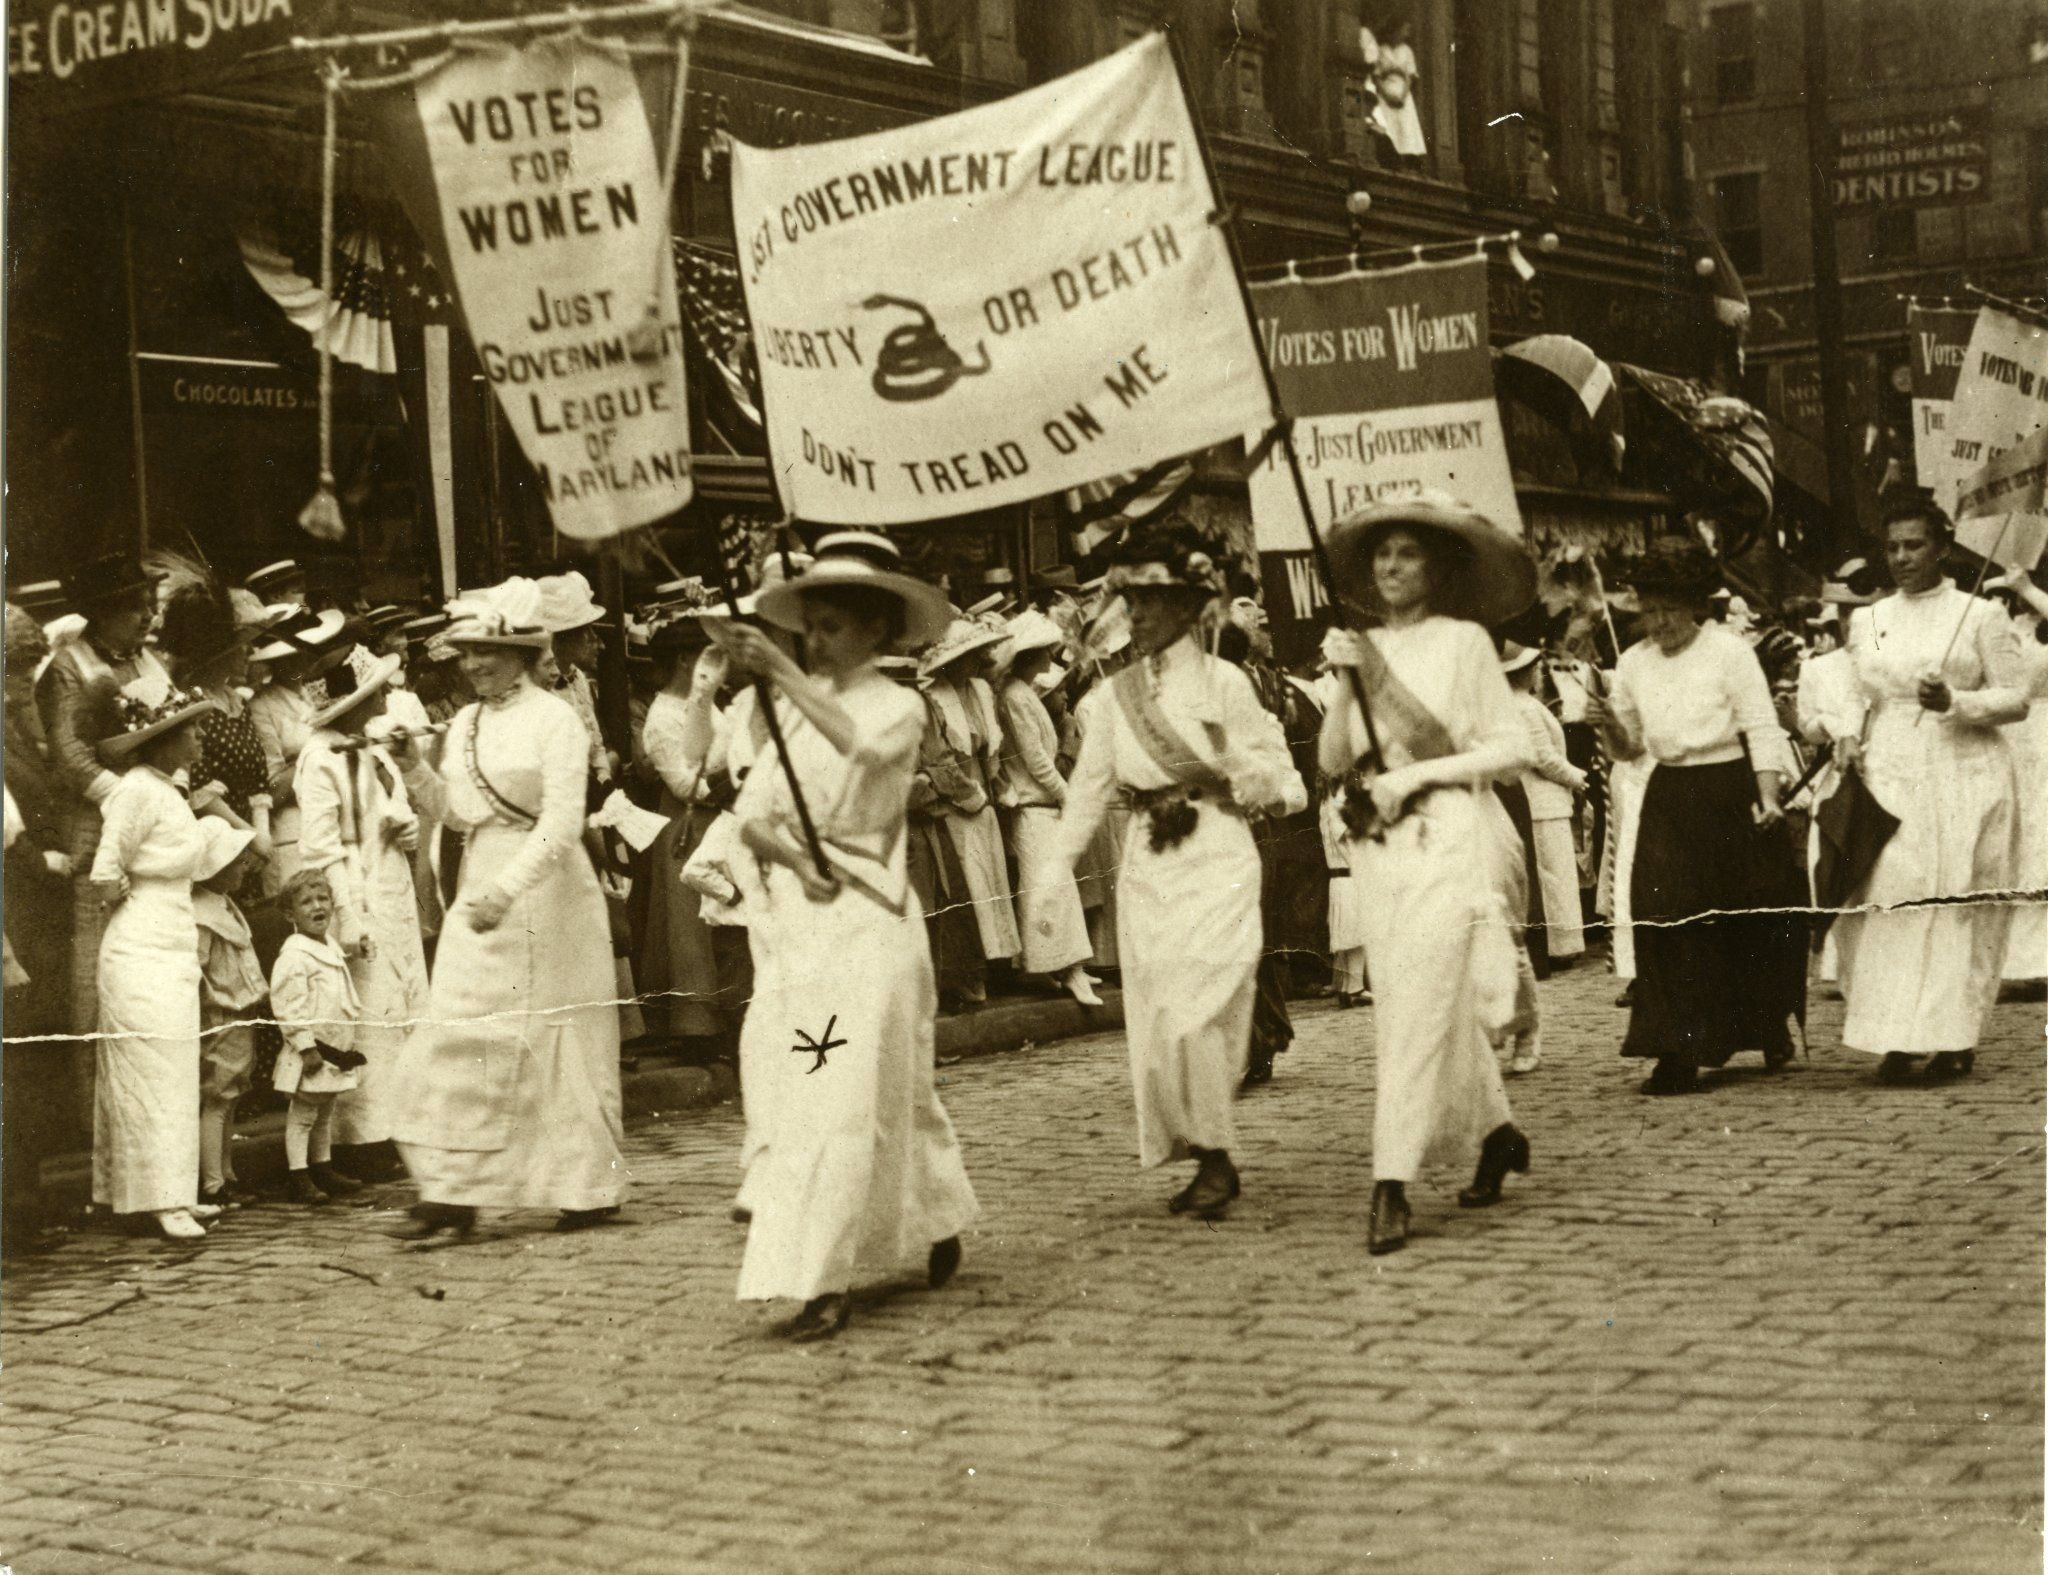 Md state archives on with images women in history